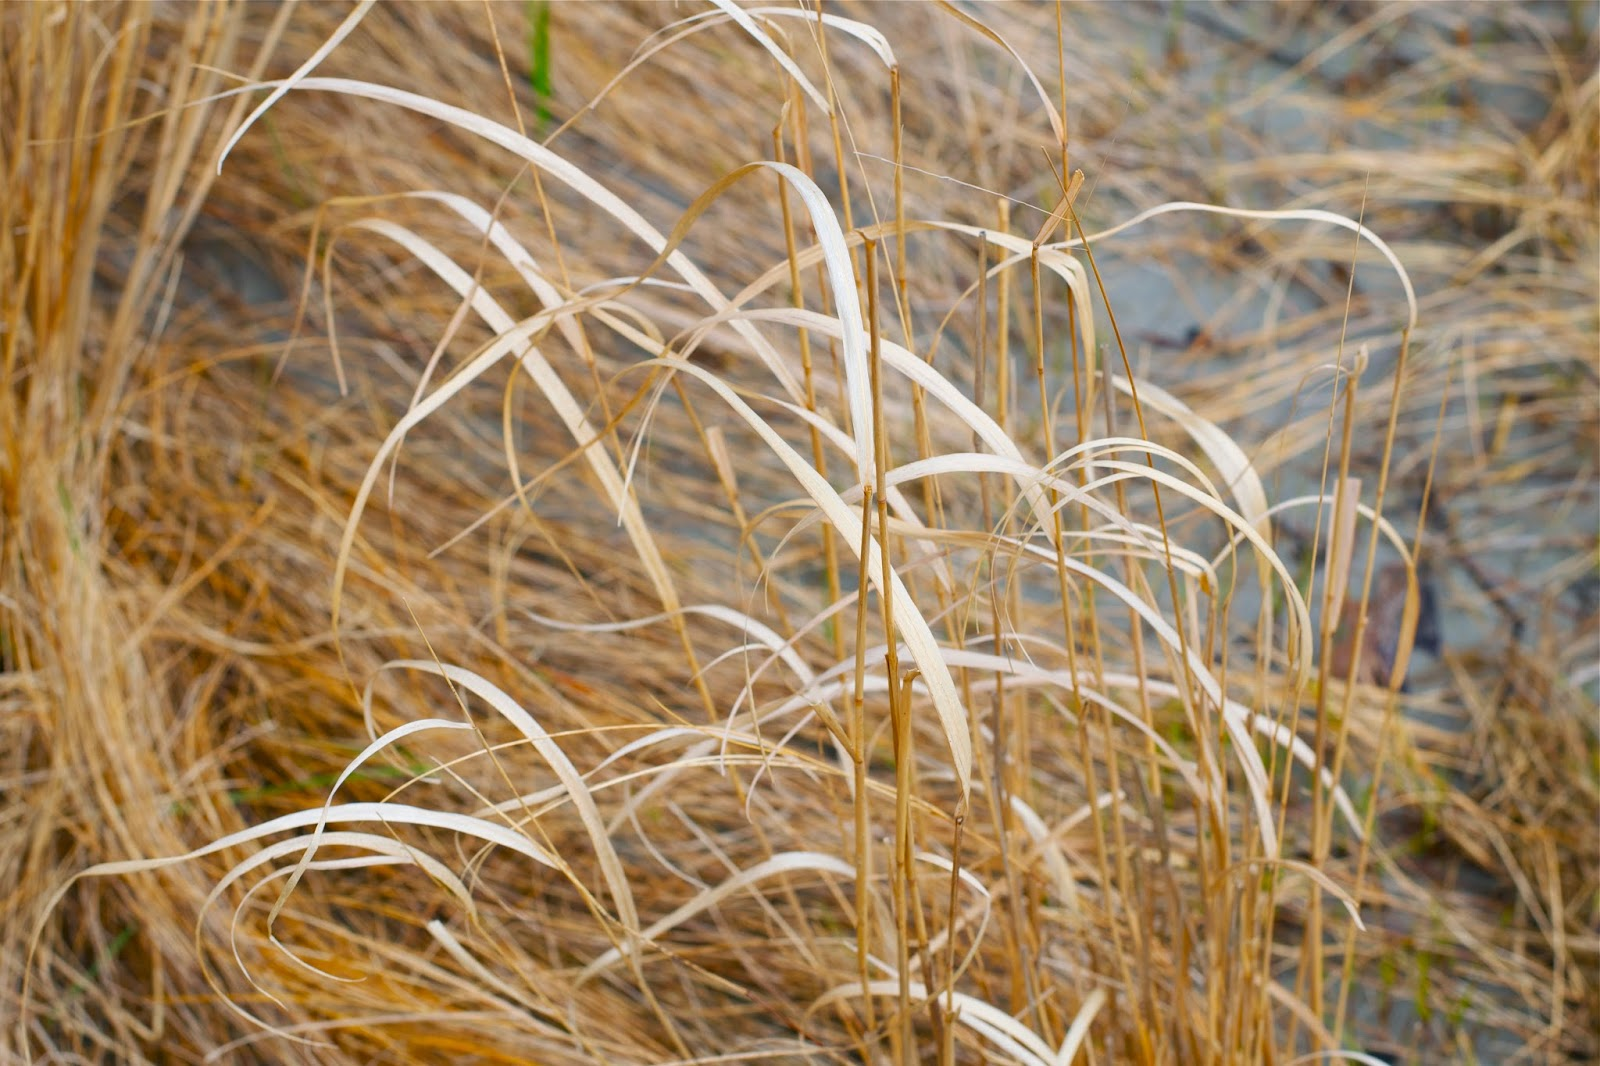 Golden and dried beach grass.